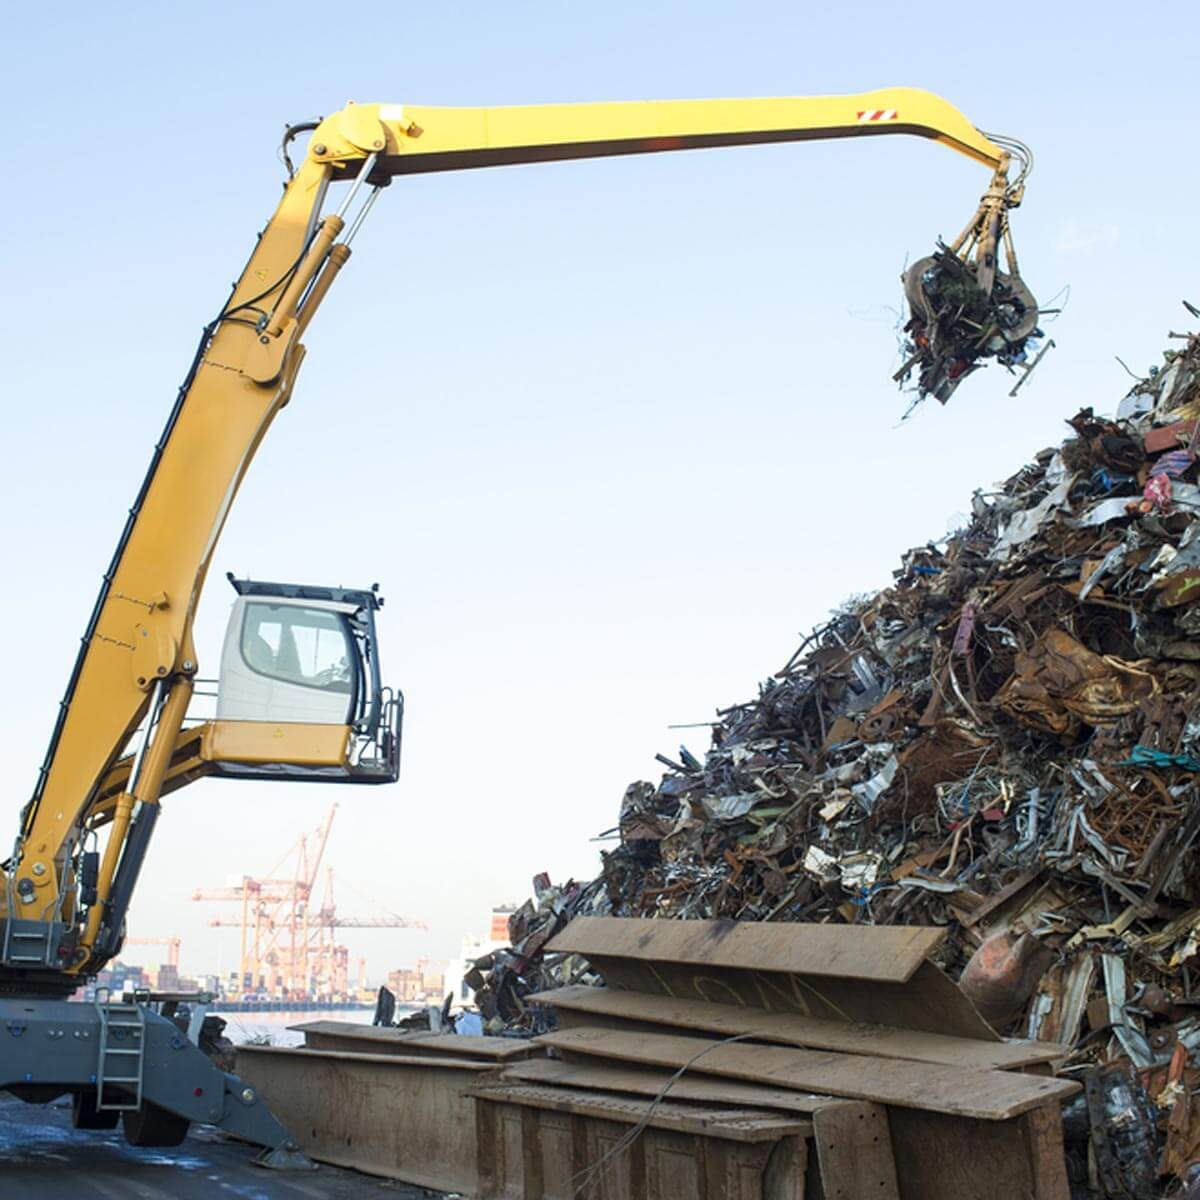 Landfill Garbage Scrap metal